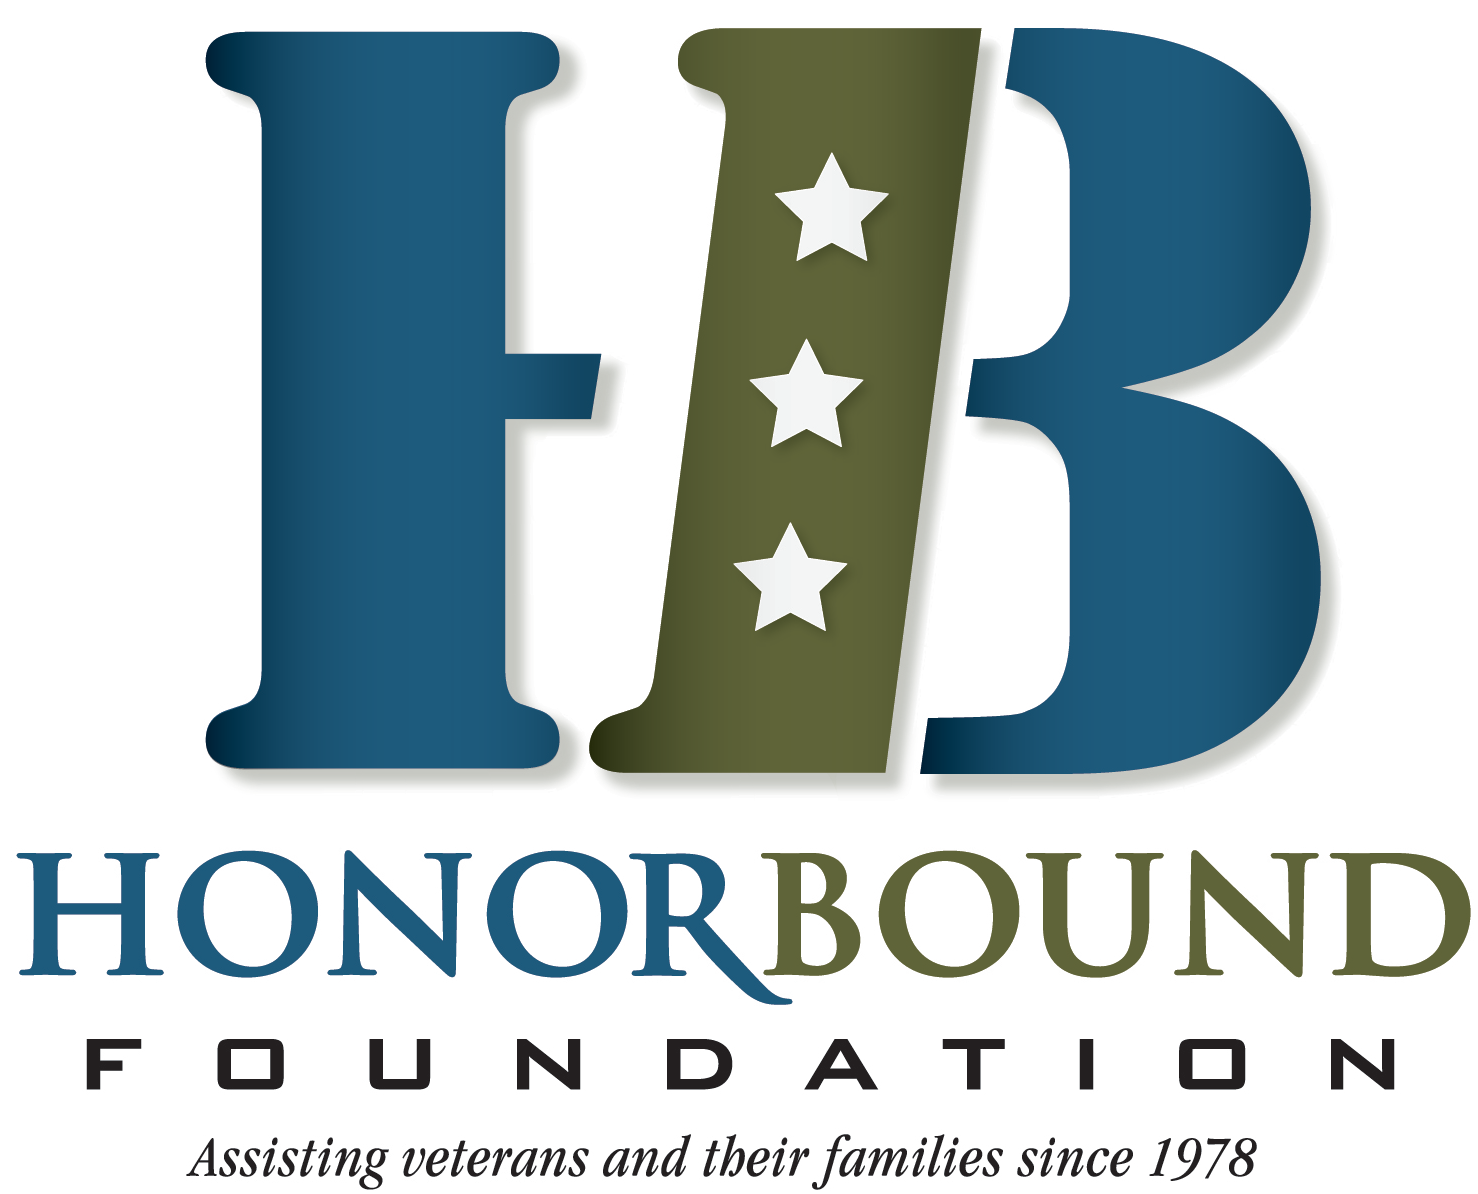 Idaho Car Donations - HonorBound Foundation - DonatecarUSA.com